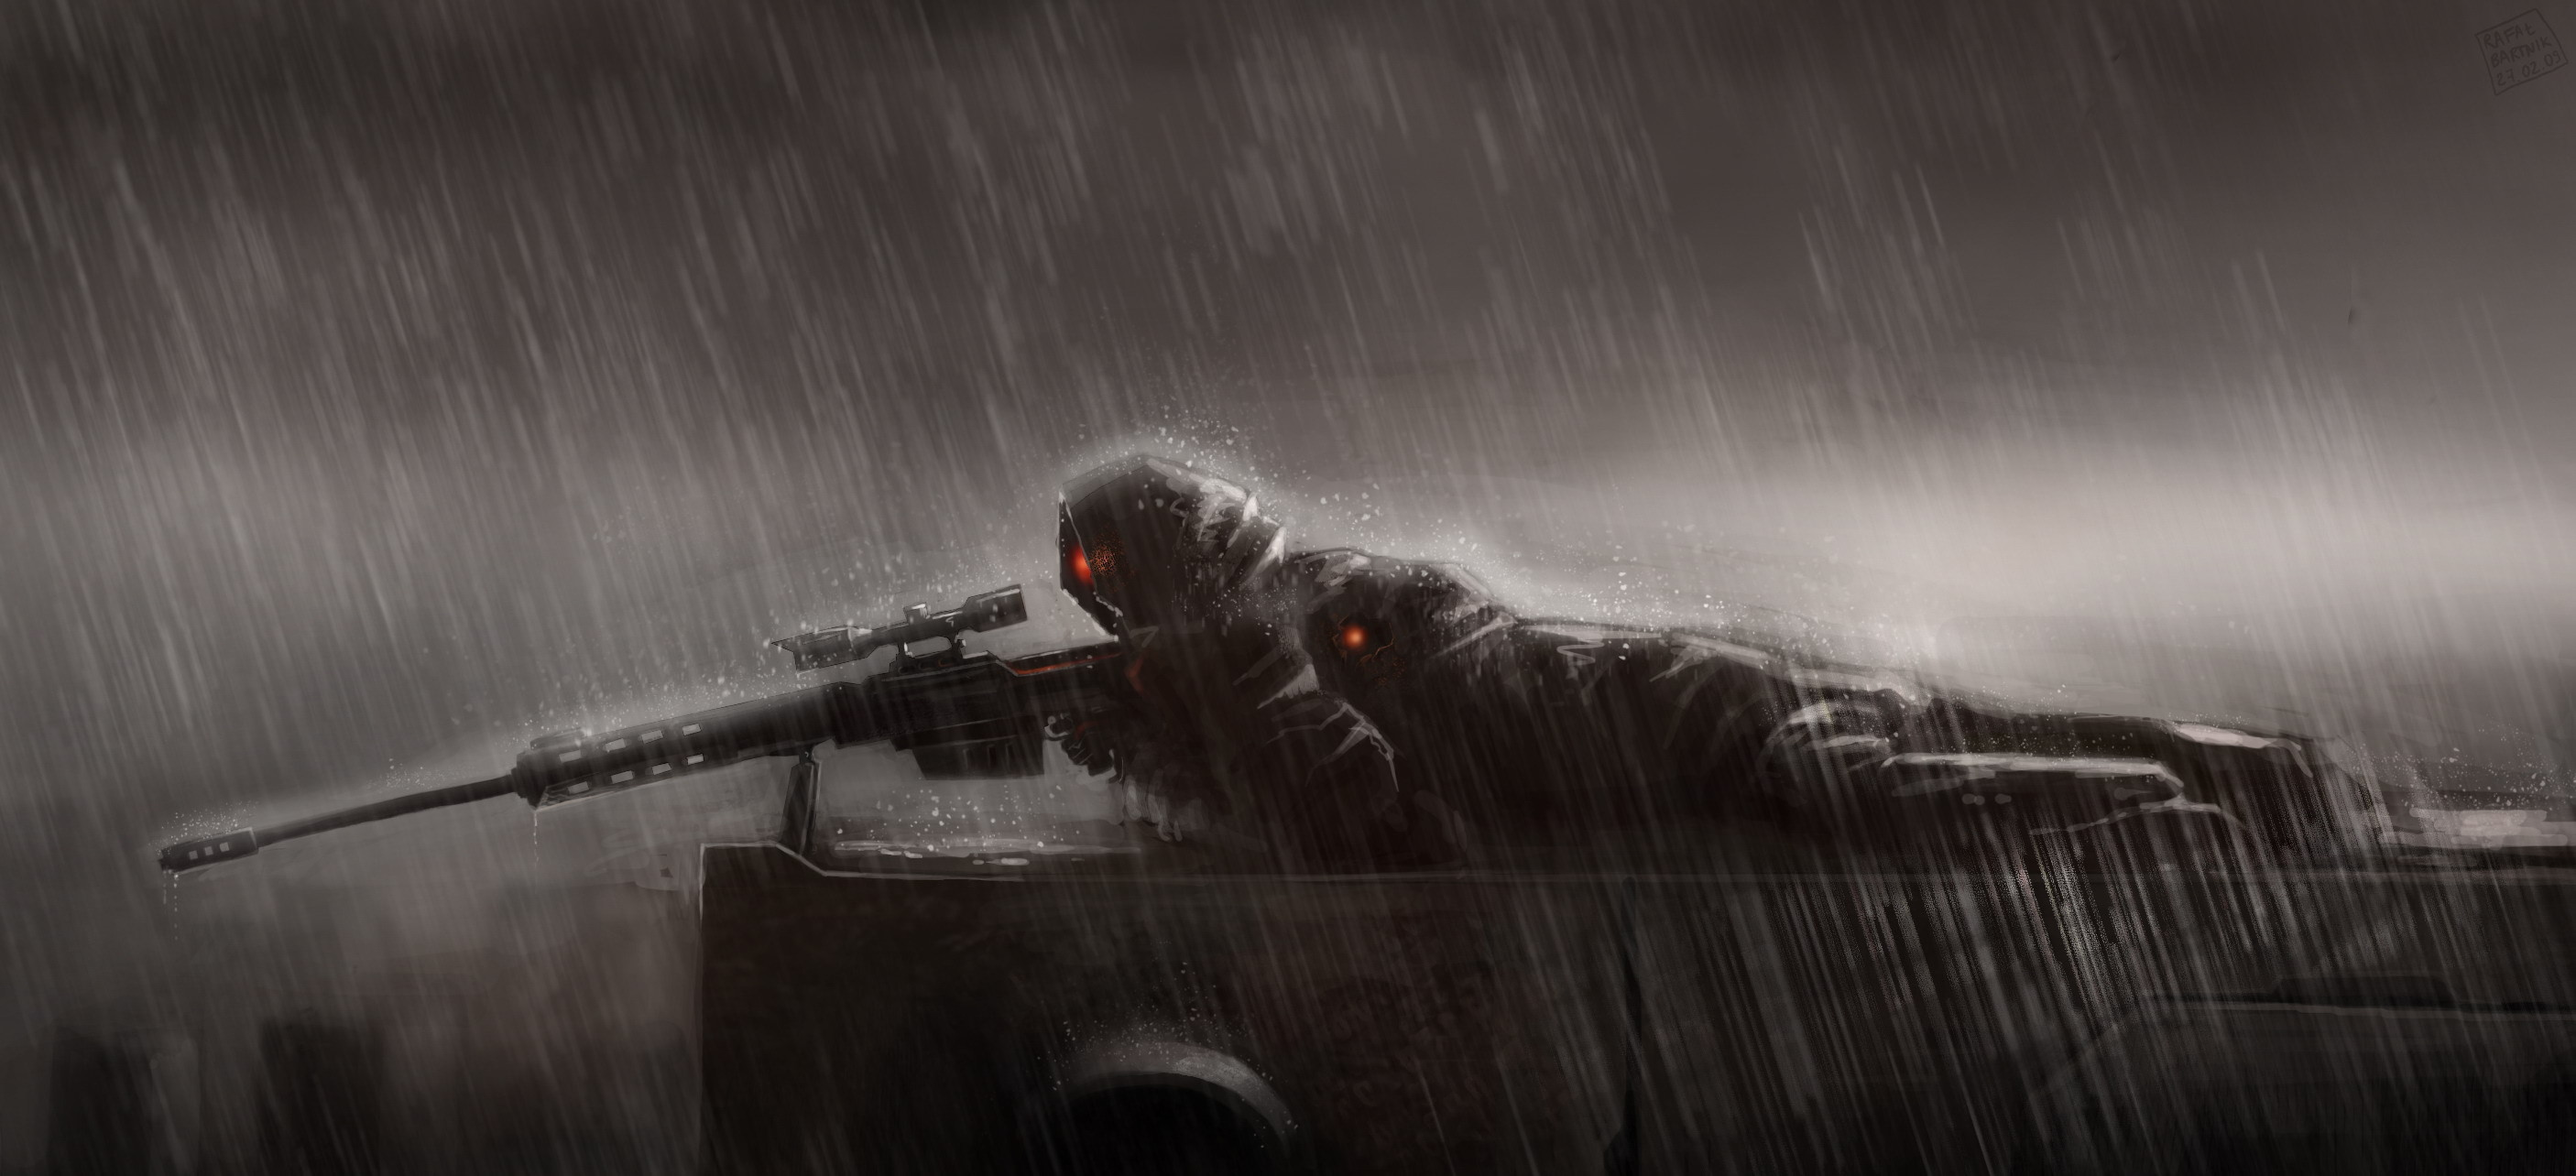 2812x1284 Sniper Rain Sniper Lies Position Rain Sniper Rifle Wallpaper At Dark  Wallpapers